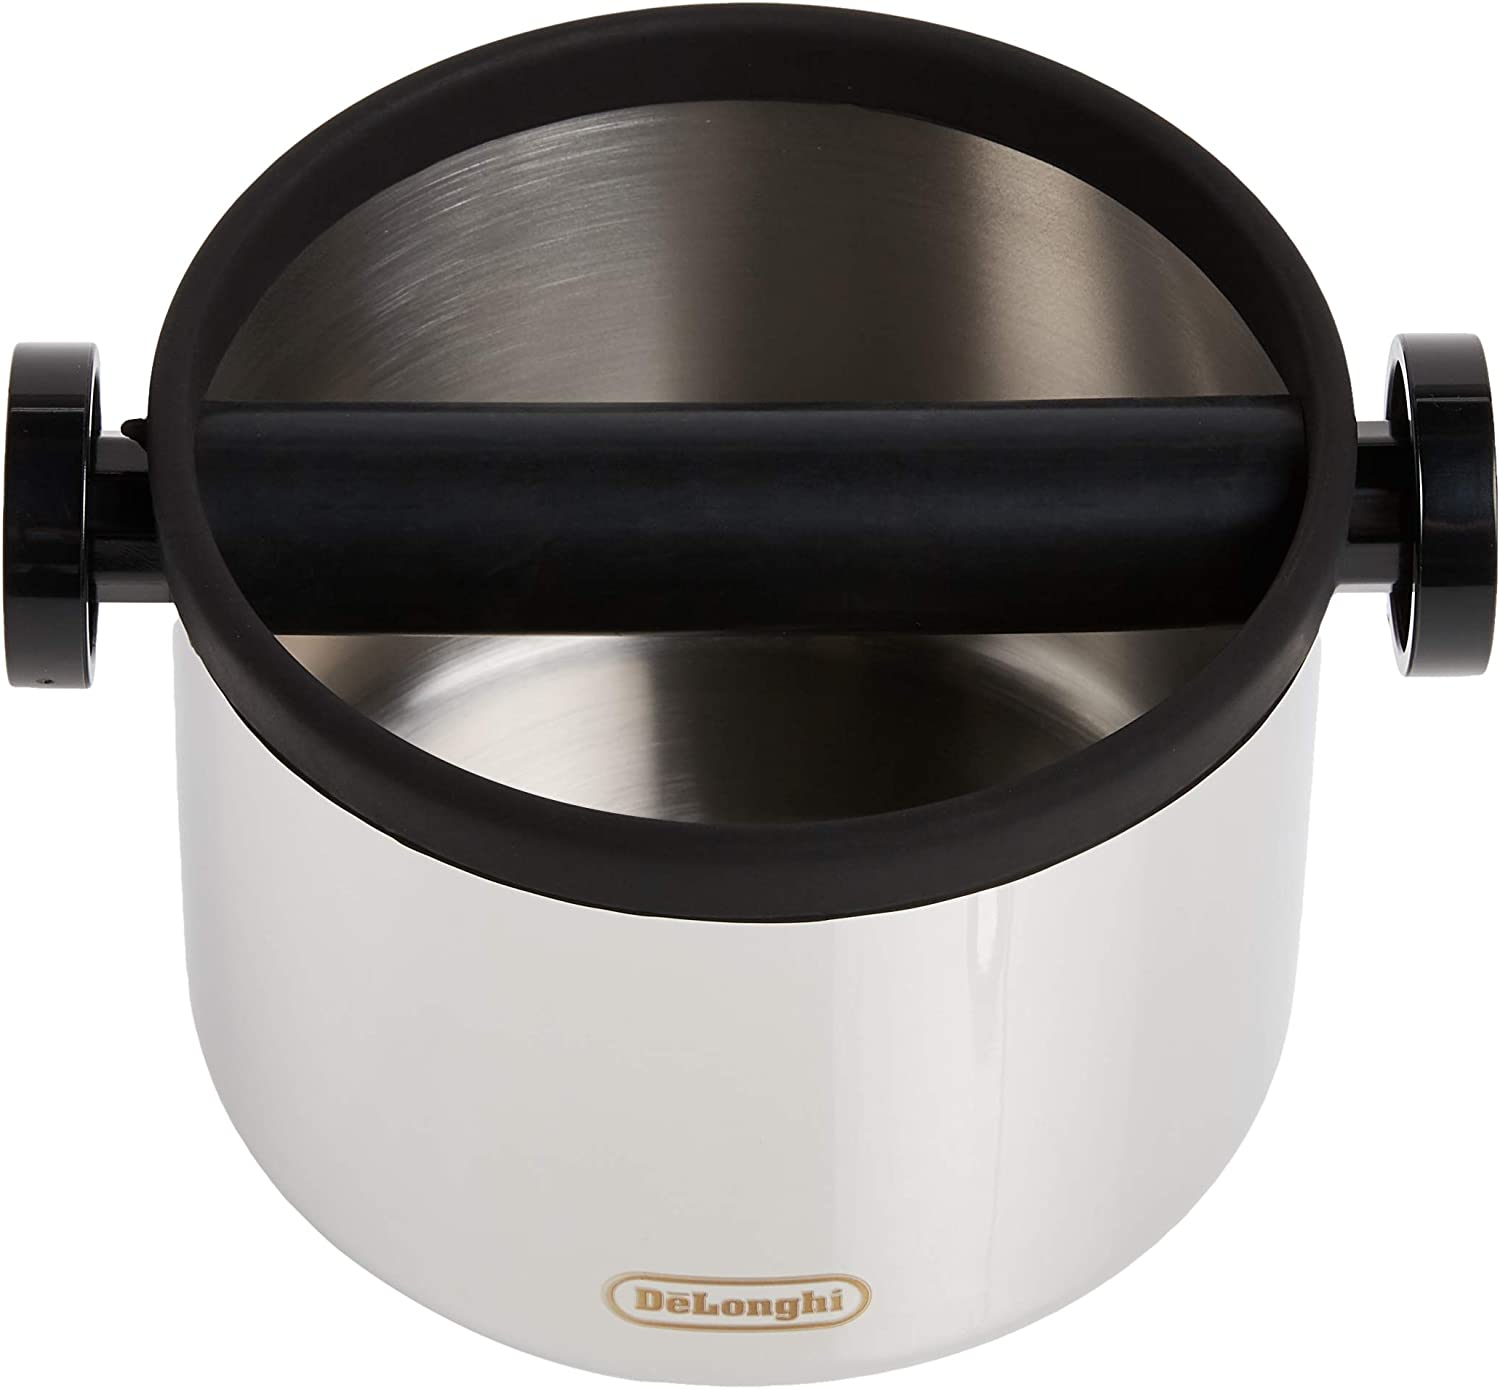 DLSC062 Dishwasher Safe Stainless Steel, Large 5-inch DeLonghi Espresso Knock Box Easy and Mess-Free Disposal of Coffee Puck Removable Bar and Non-Slip Base